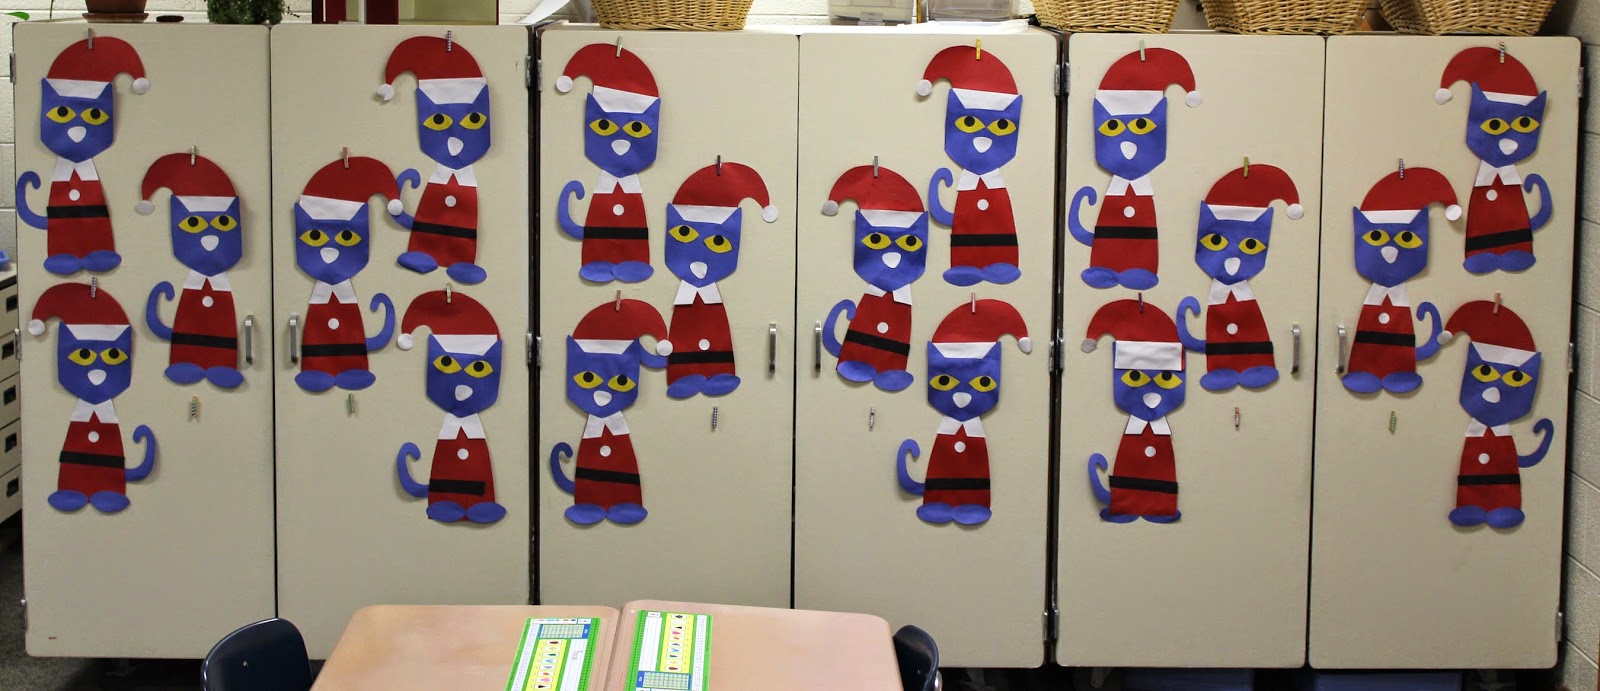 keeping it groovy with pete the cat saves christmas - Pete The Cat Saves Christmas